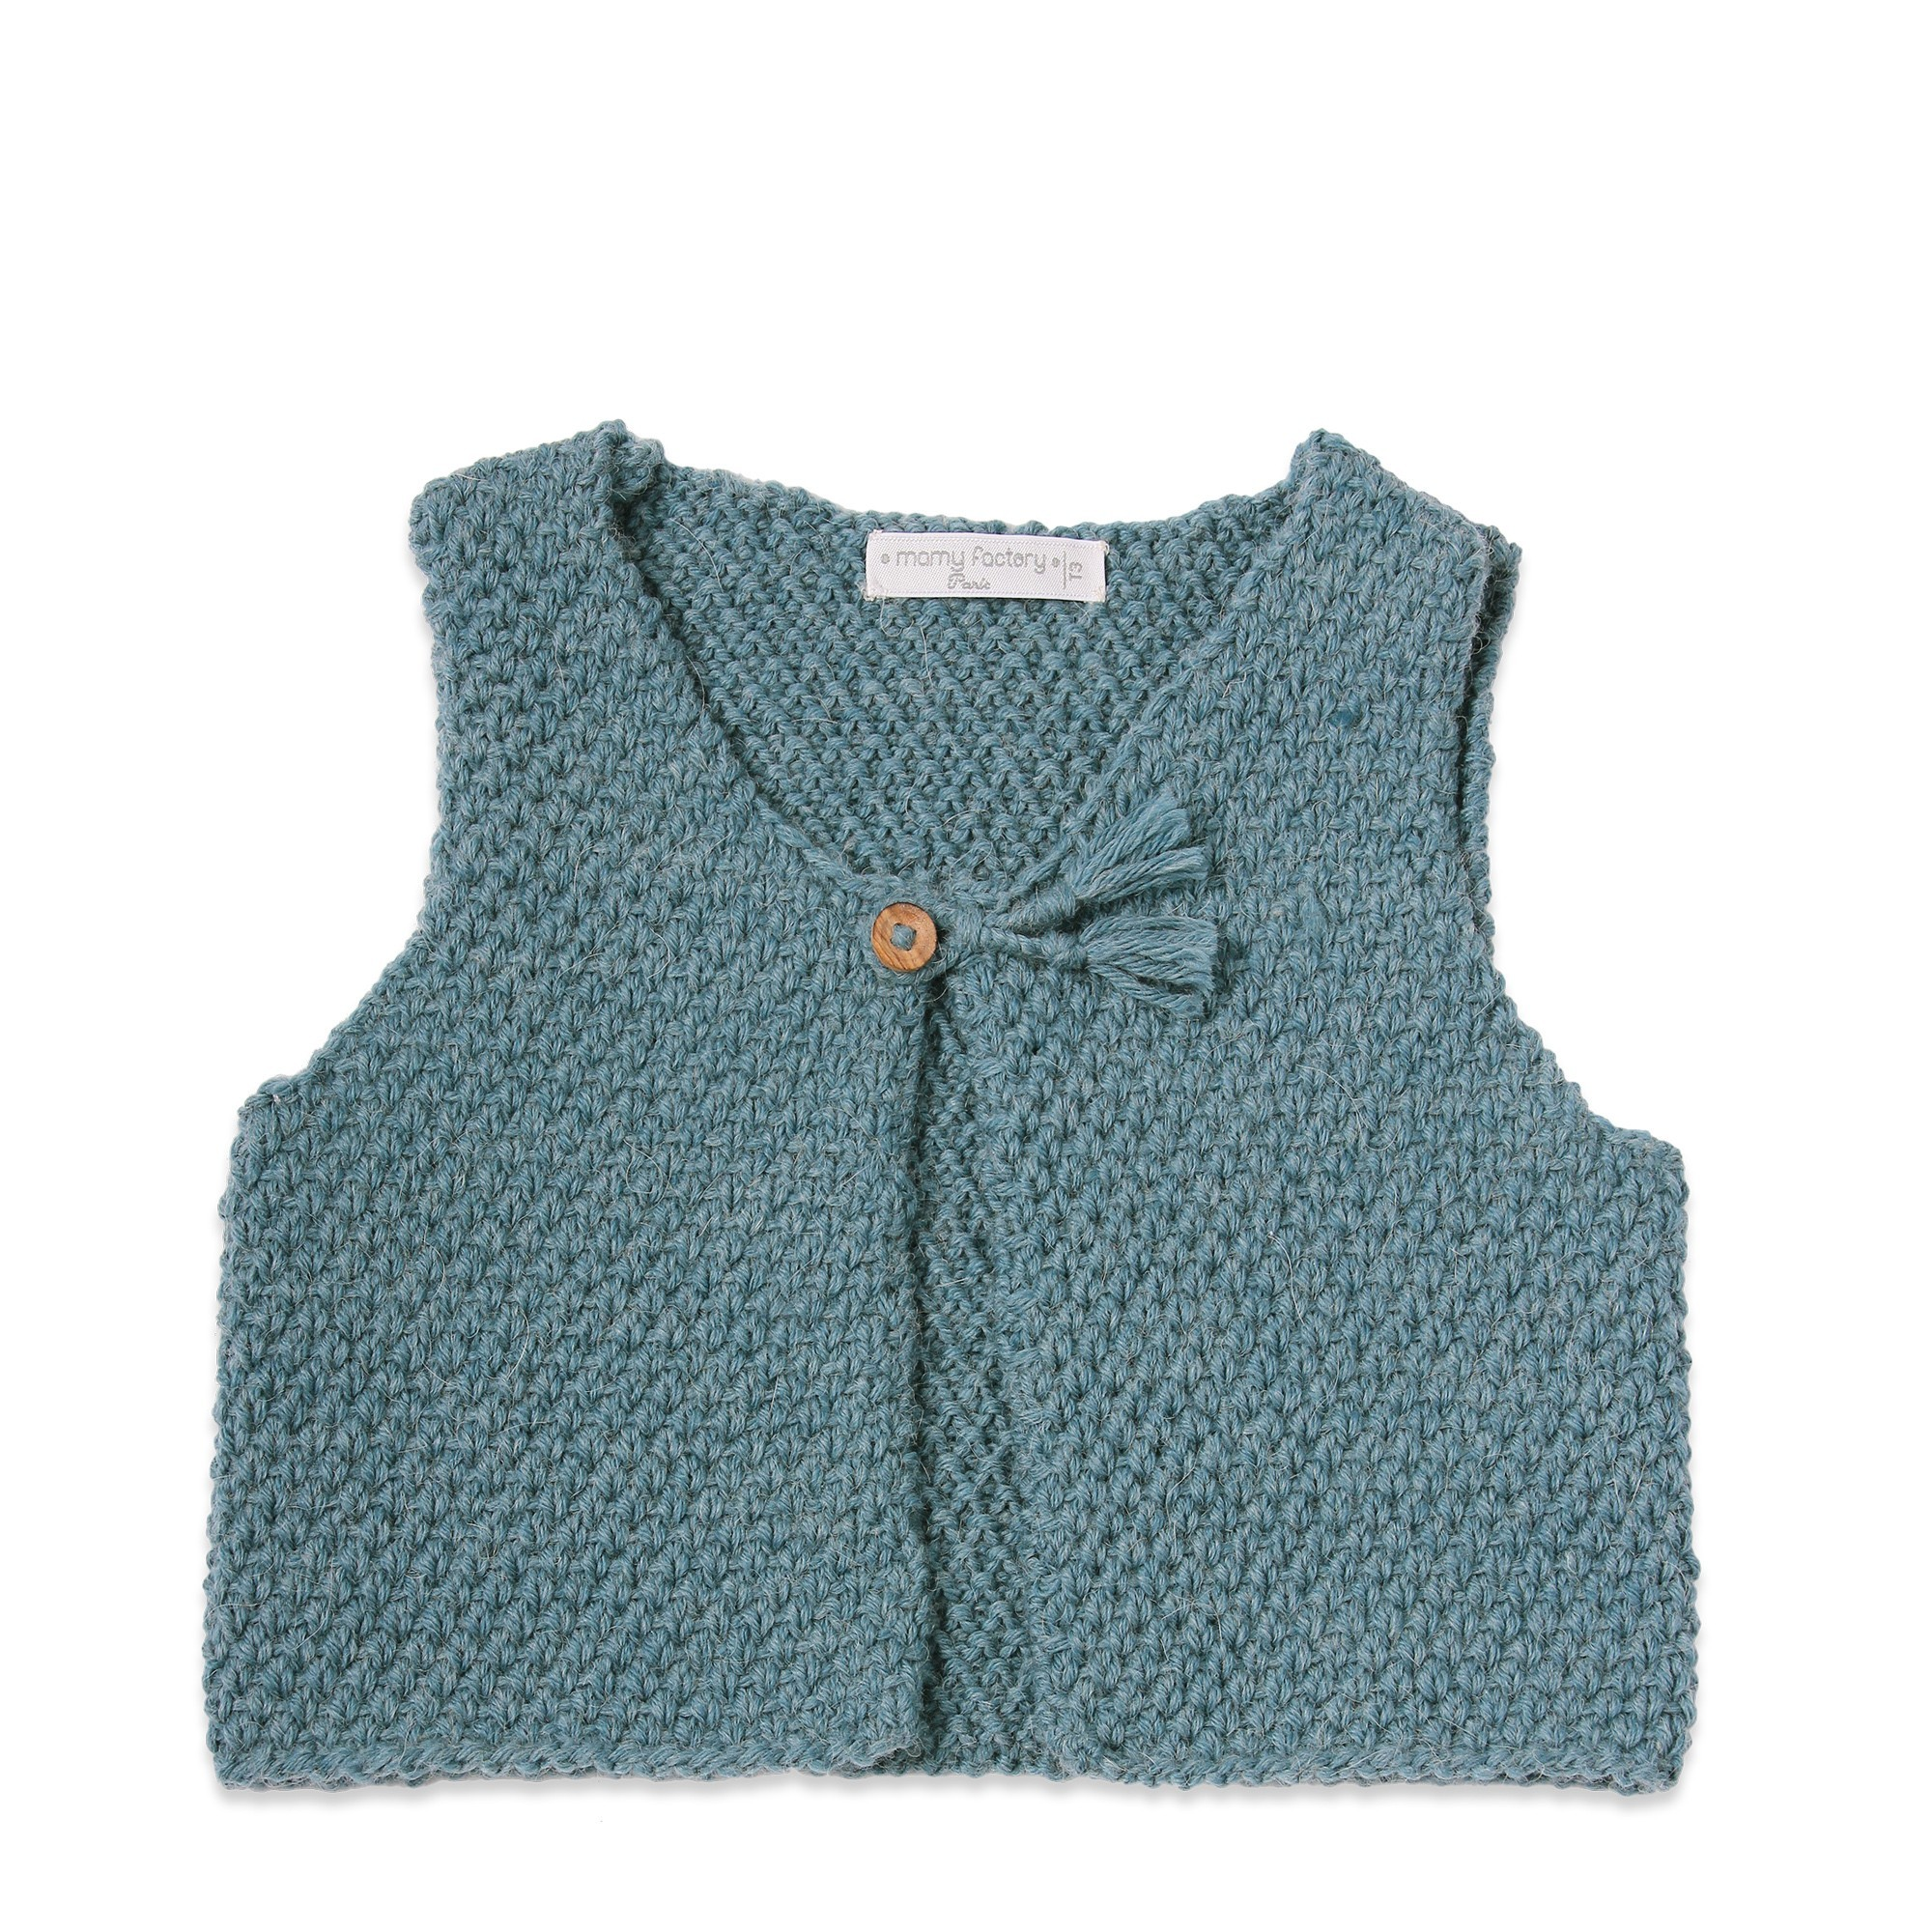 Vest Knitting Pattern For Children : Grannys knitwear - Baby petrol blue sheperds vest cardigan, wood bu...